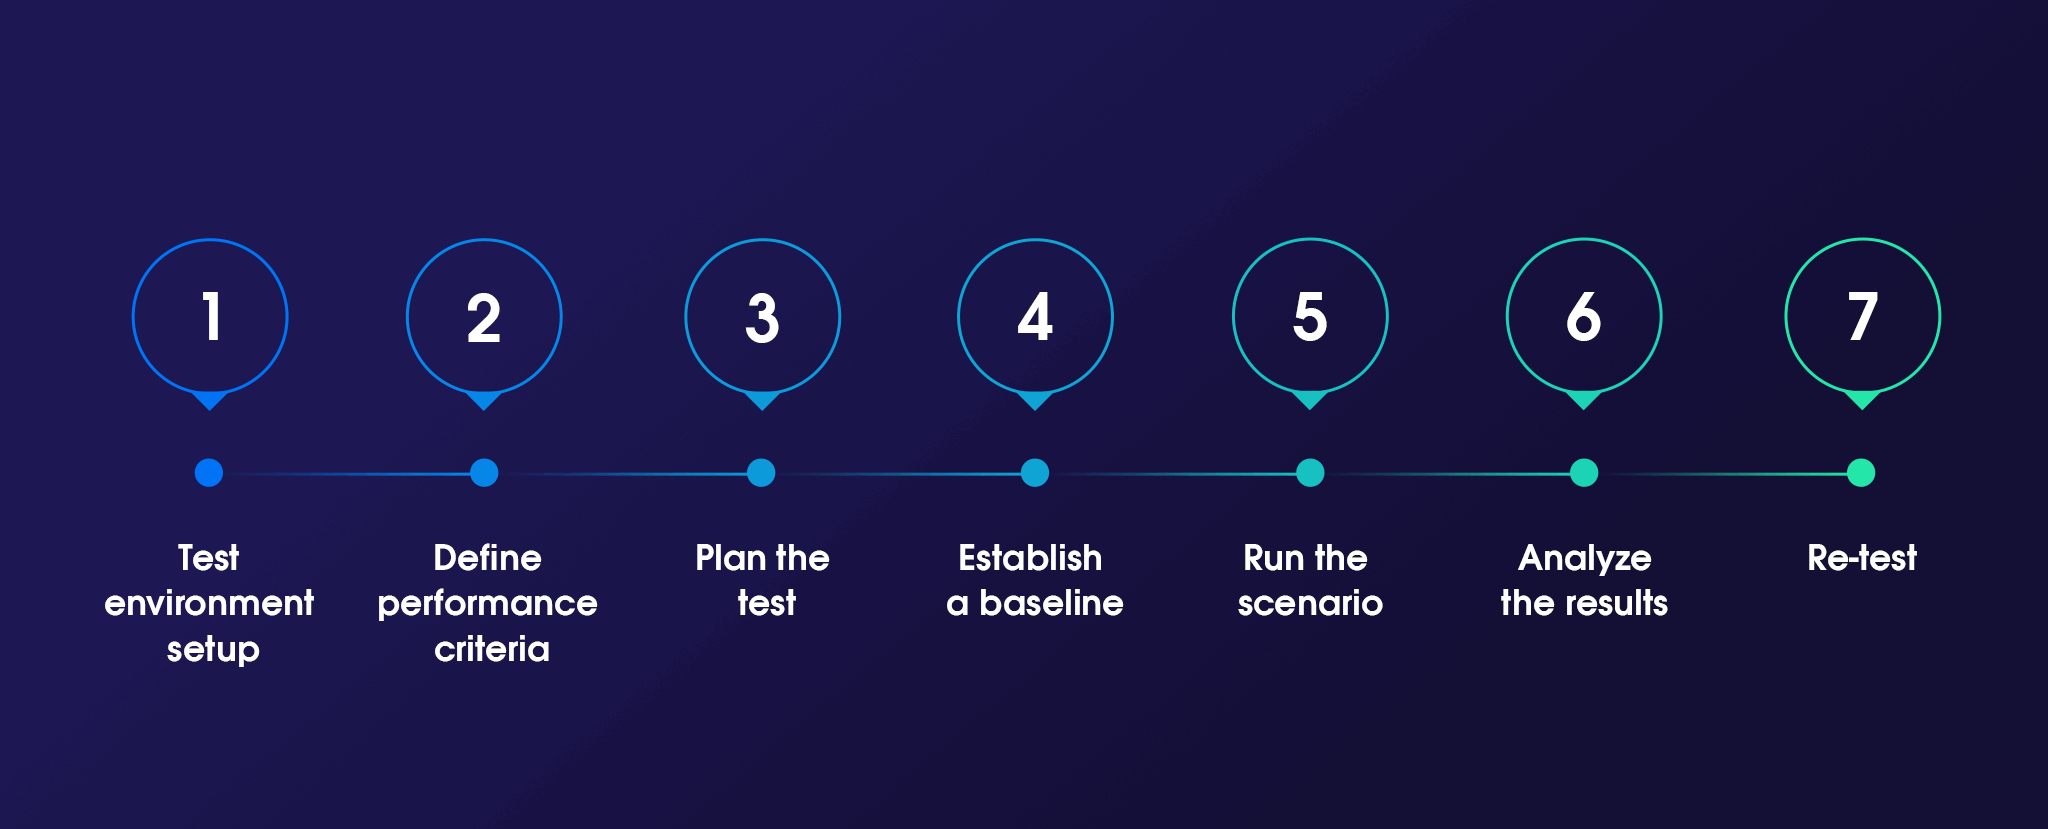 Main steps of performing a load test